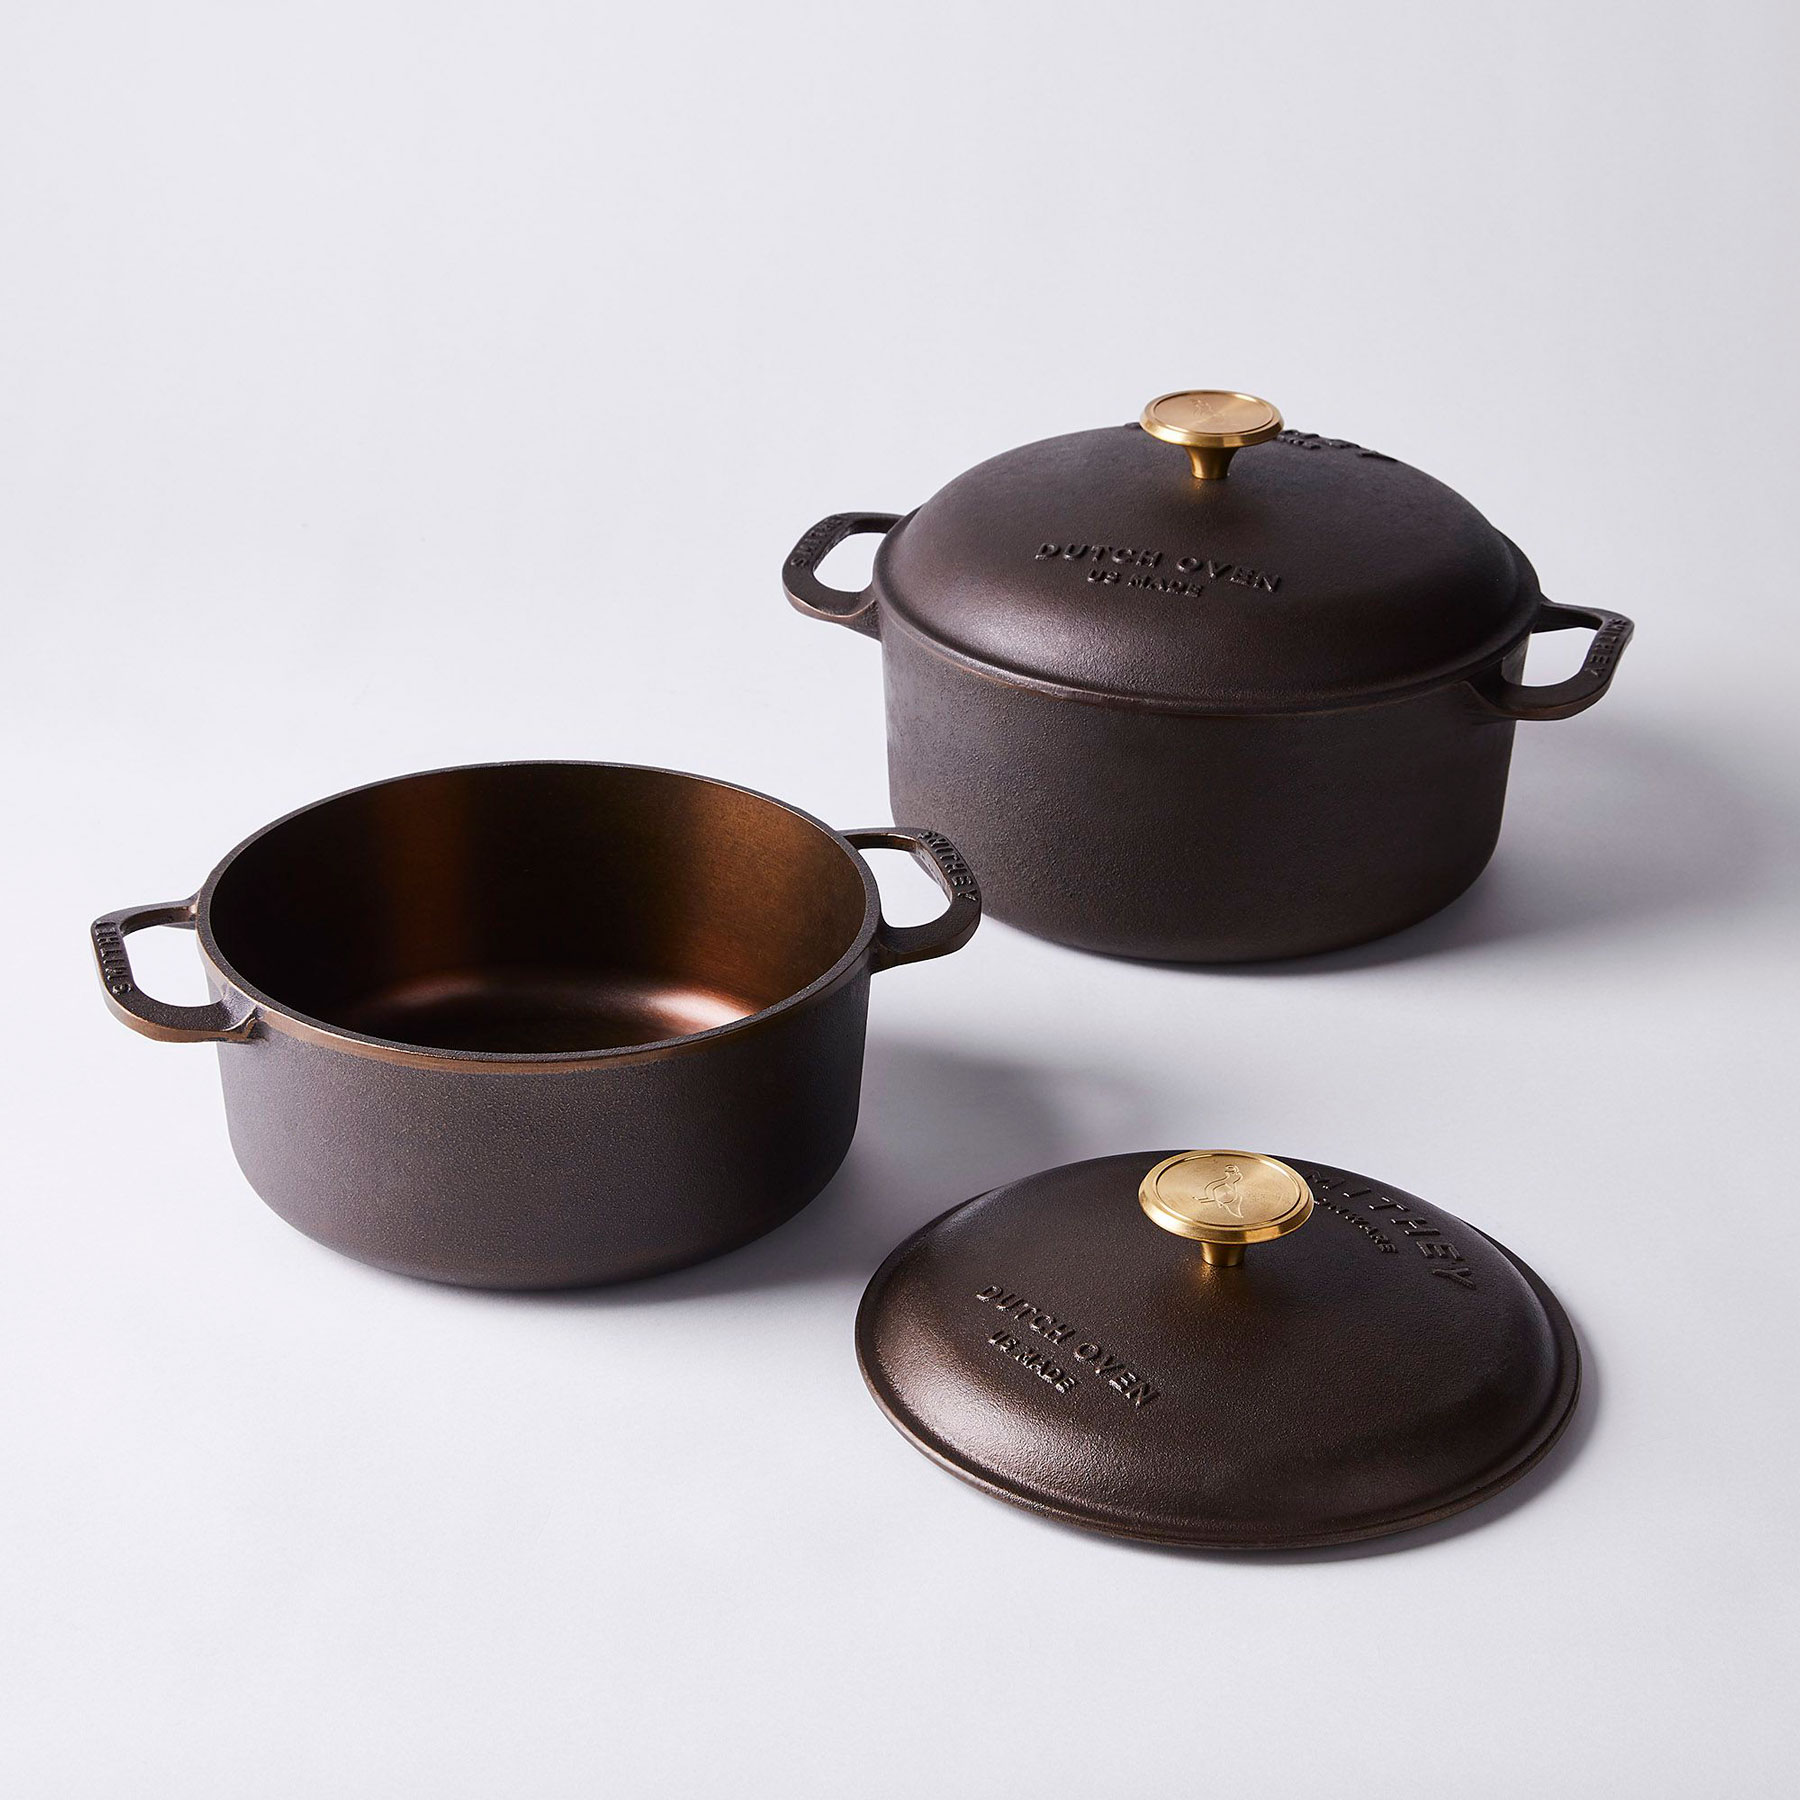 6 Clever Items 12/4/20 - Smithey Ironware Co. 3.5 Quart Cast Iron Dutch Oven